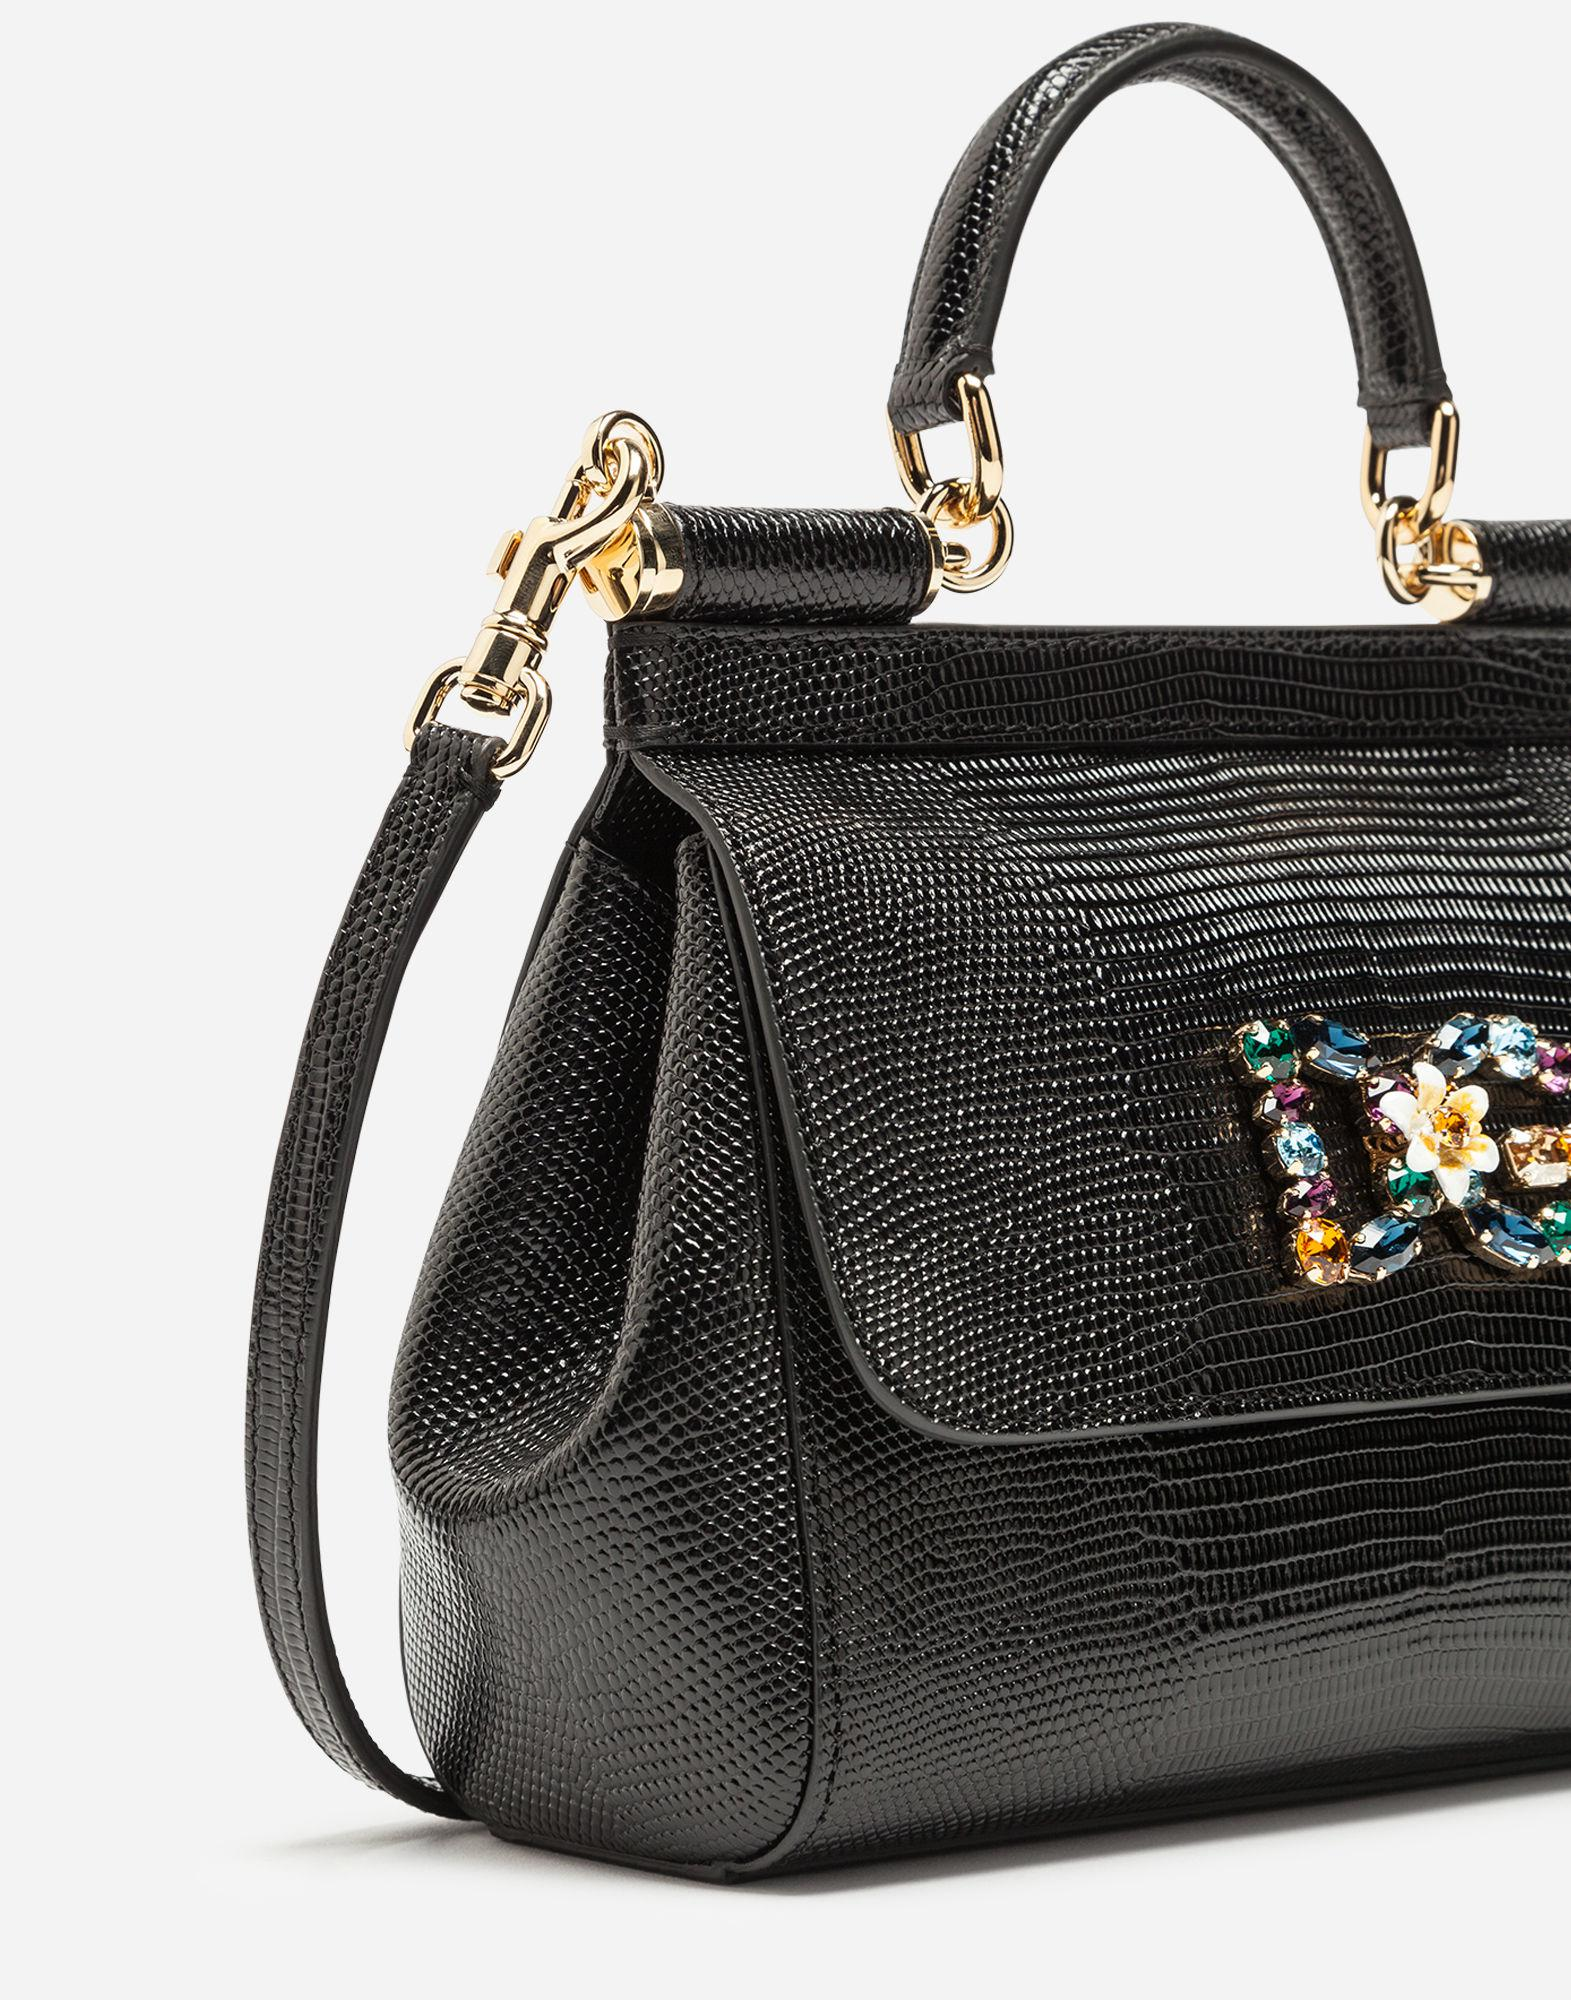 Lyst - Dolce   Gabbana Small Calfskin Sicily Bag With Iguana-print And Dg  Crystal Logo Patch in Black 9b708410676a6